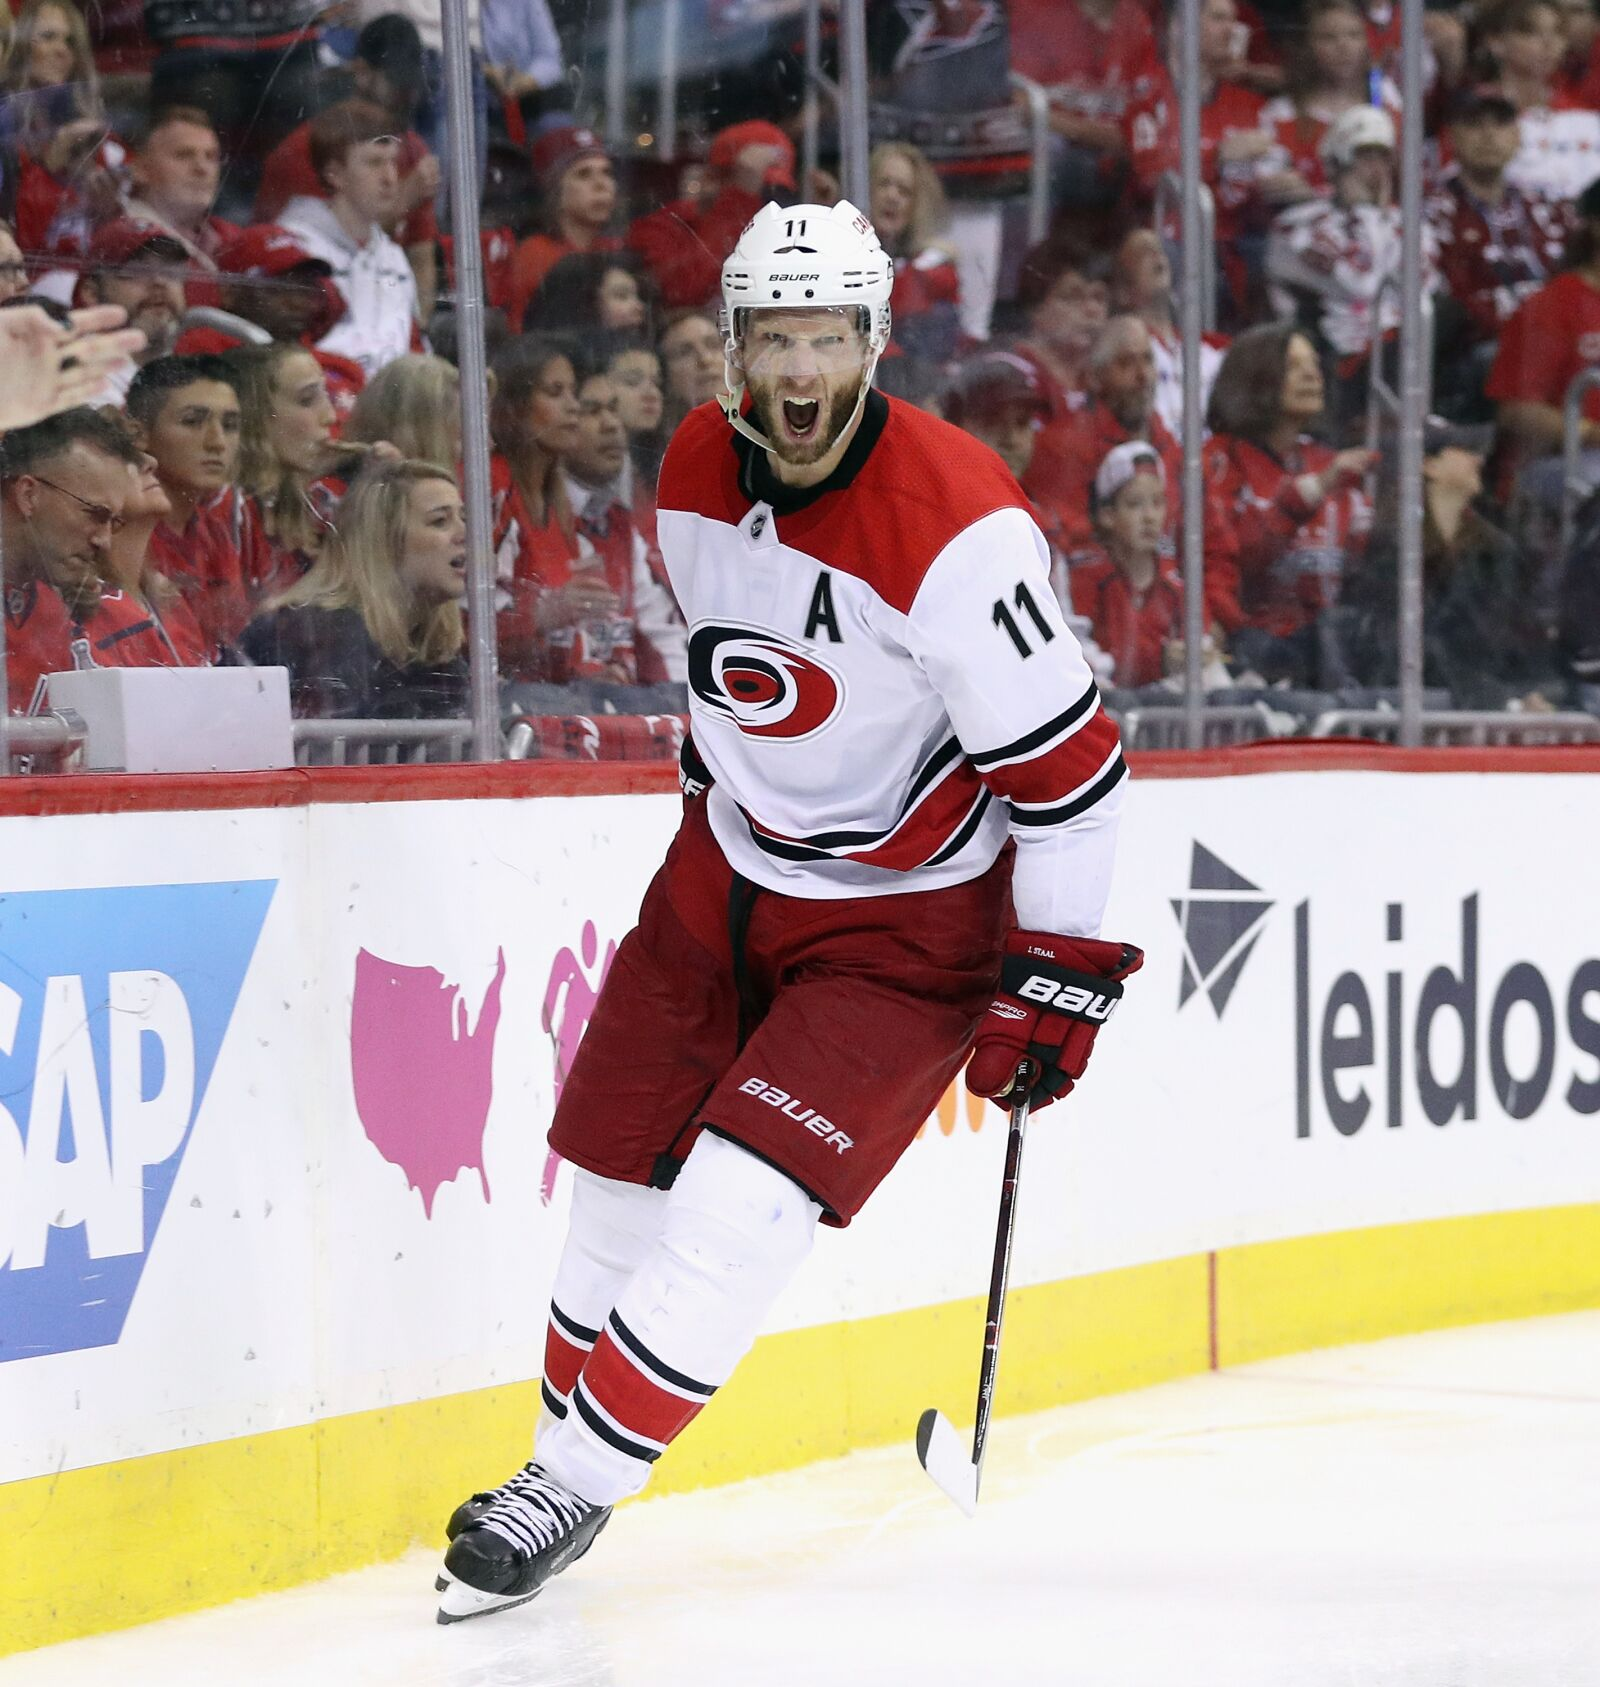 Carolina Hurricanes: Why Jordan Staal is Important